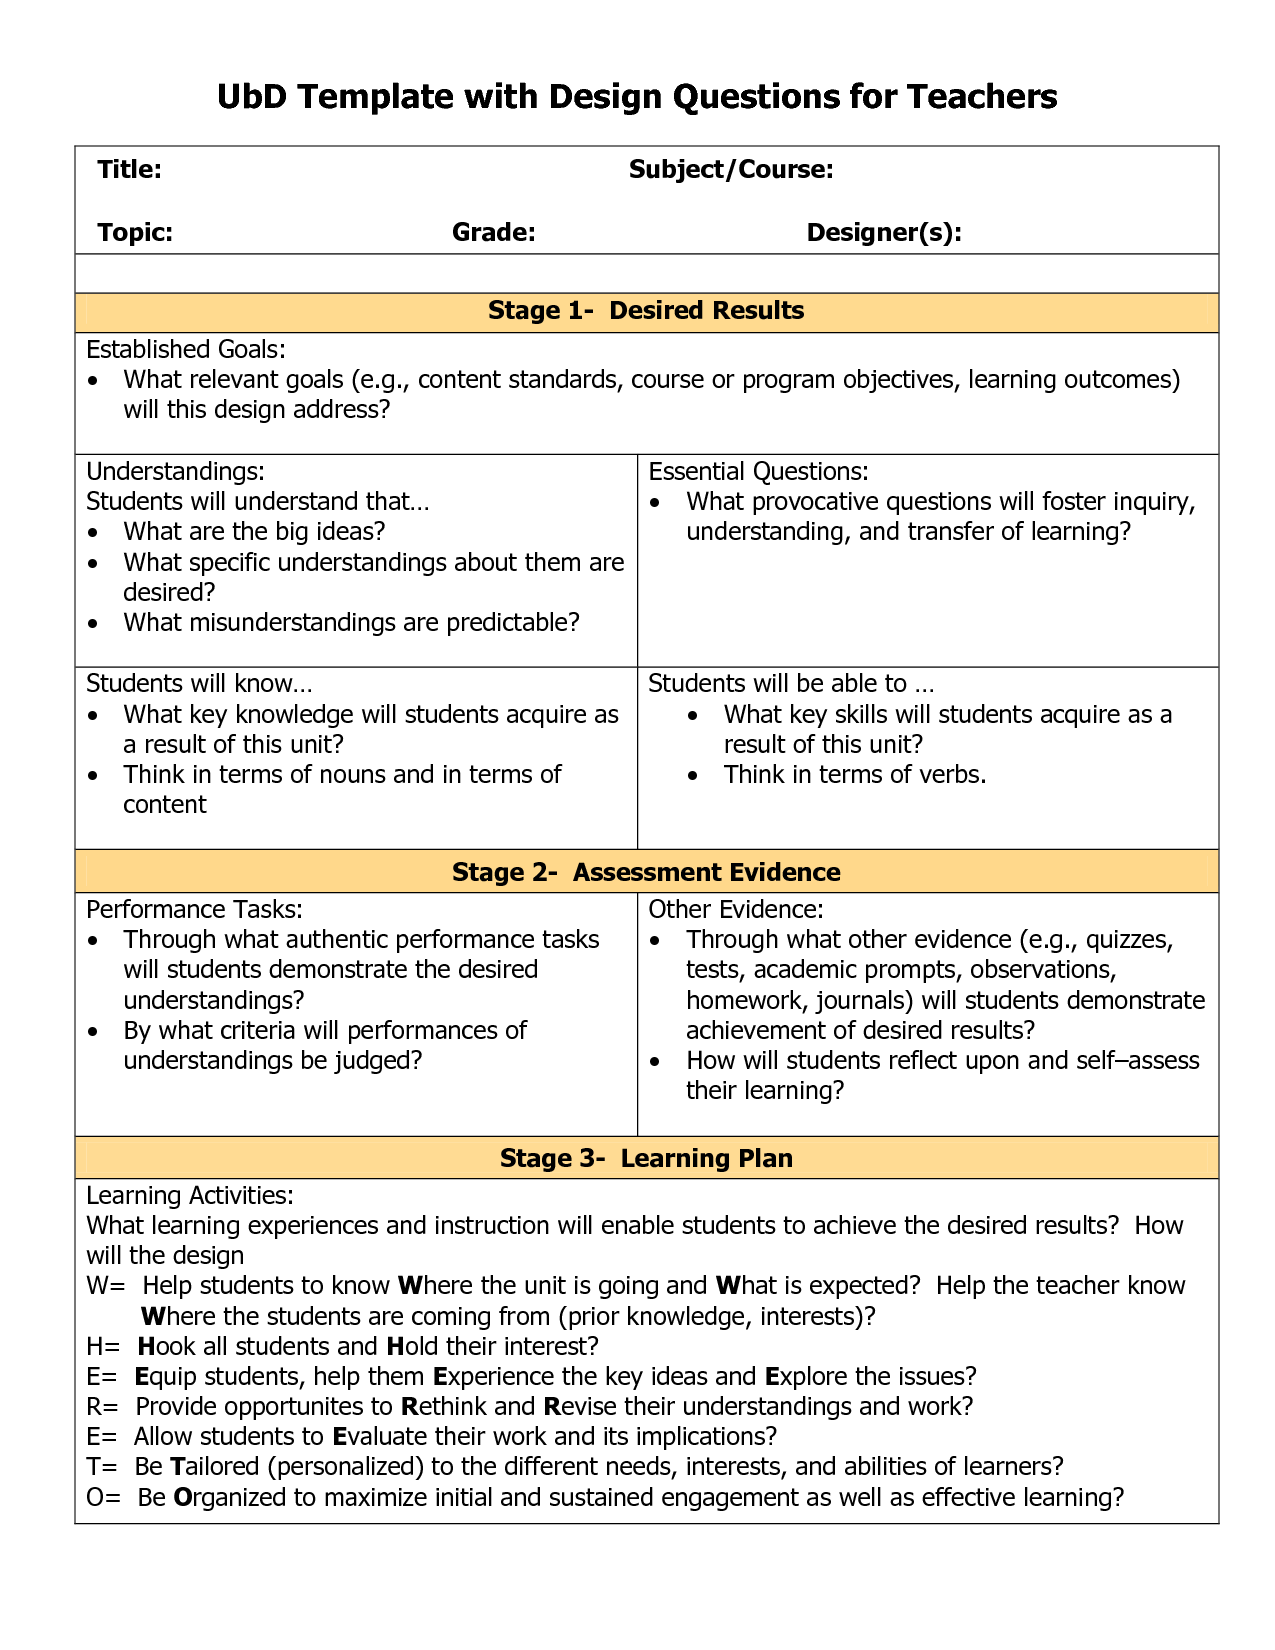 Blank Ubd Planning Template Doc Classroom Ideas Lesson Plans